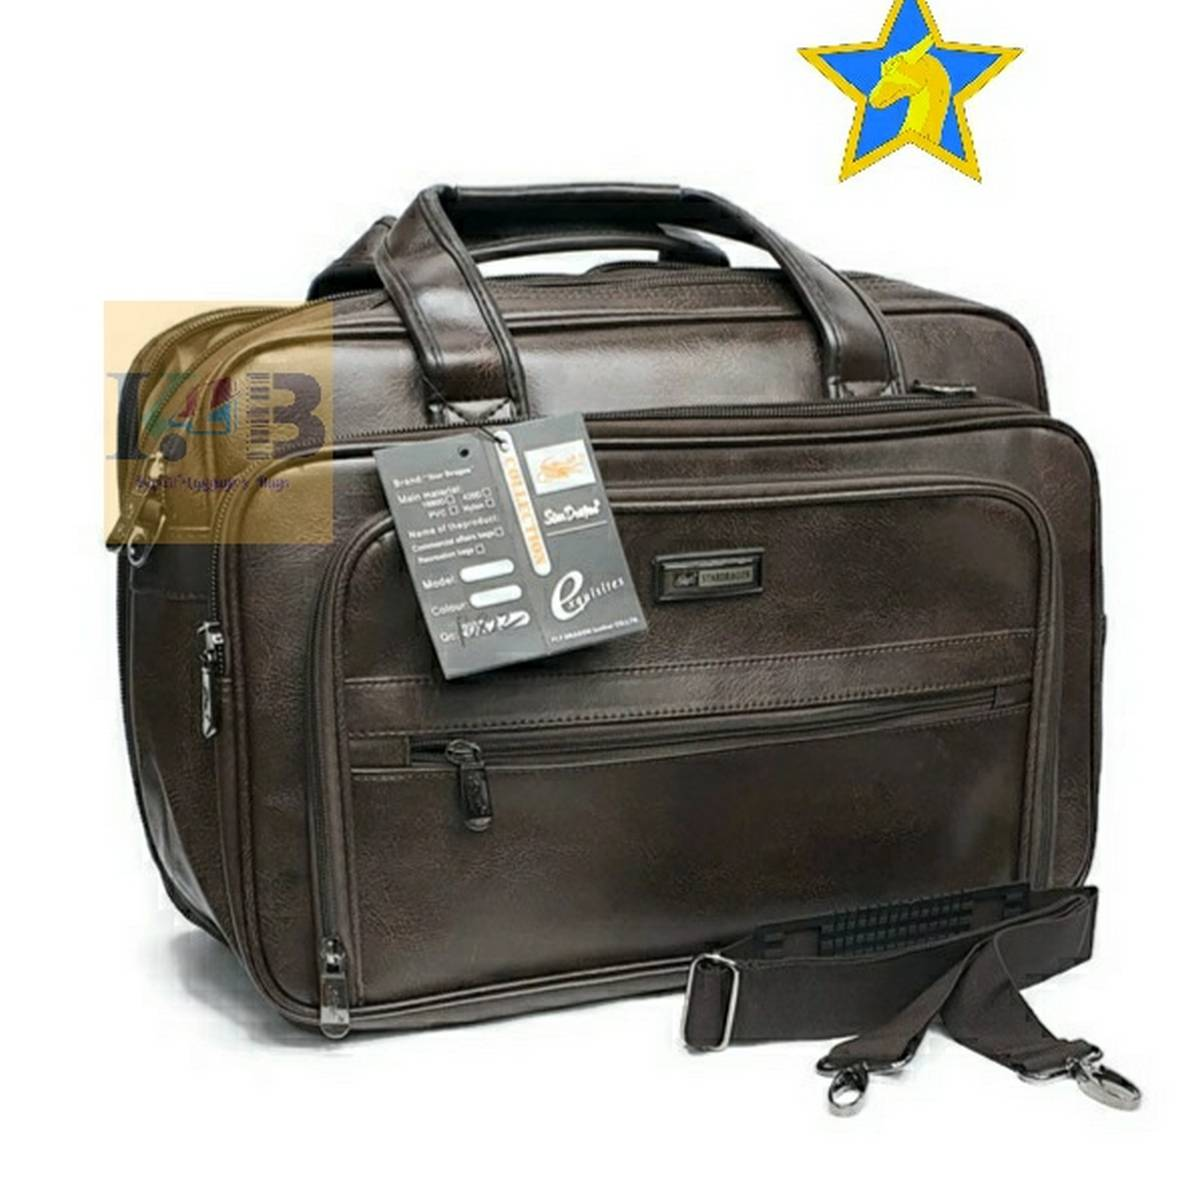 Star Dragon Office Laptop Vegan Leather Executive Formal 15.6 Laptop Briefcase Messenger Bag for Men Women with Multiple compartments (Brown)